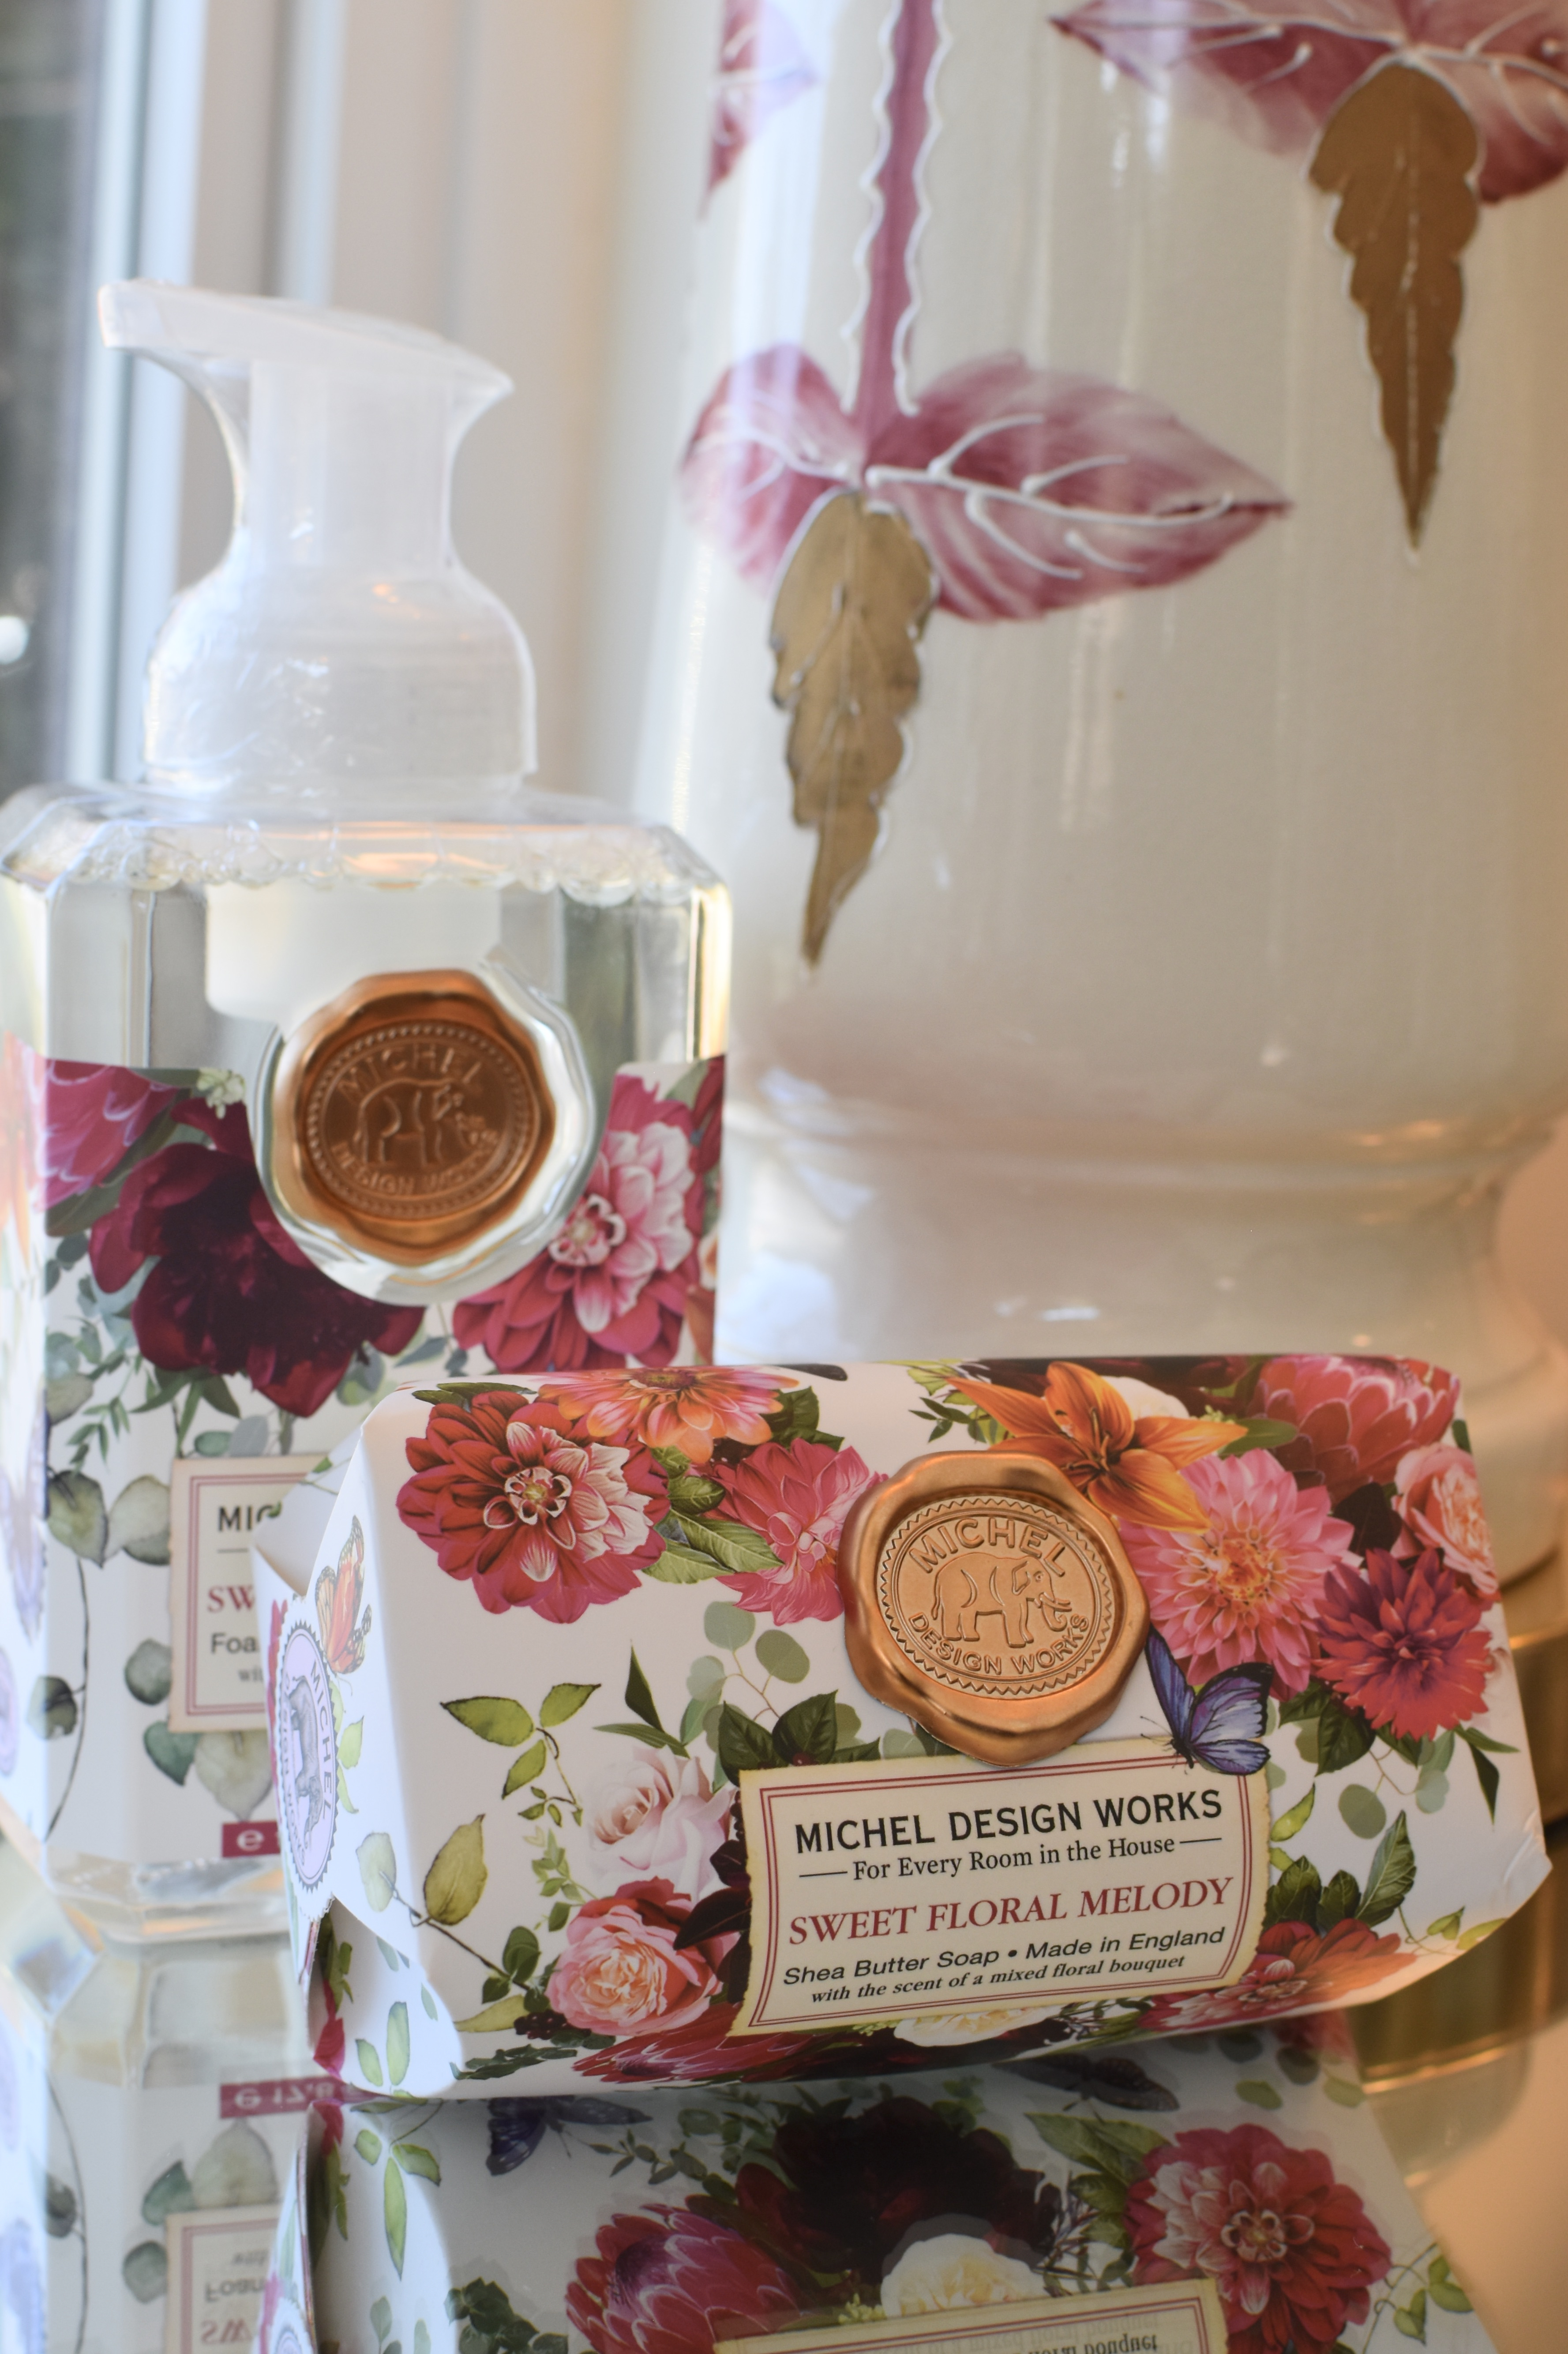 Sweet Floral Medley Foaming and Bar Soap